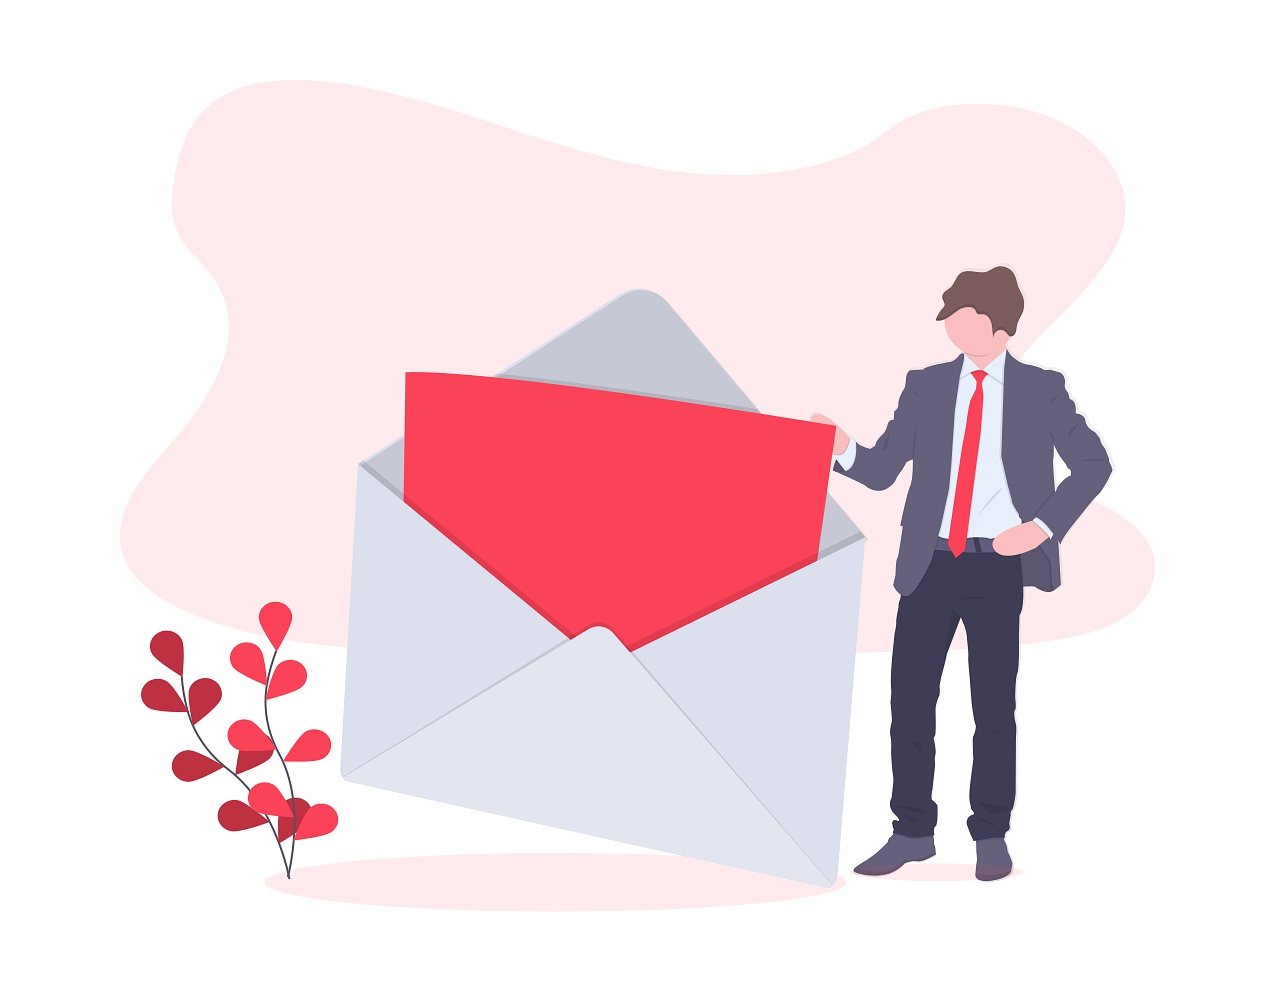 illustration of person holding envelope